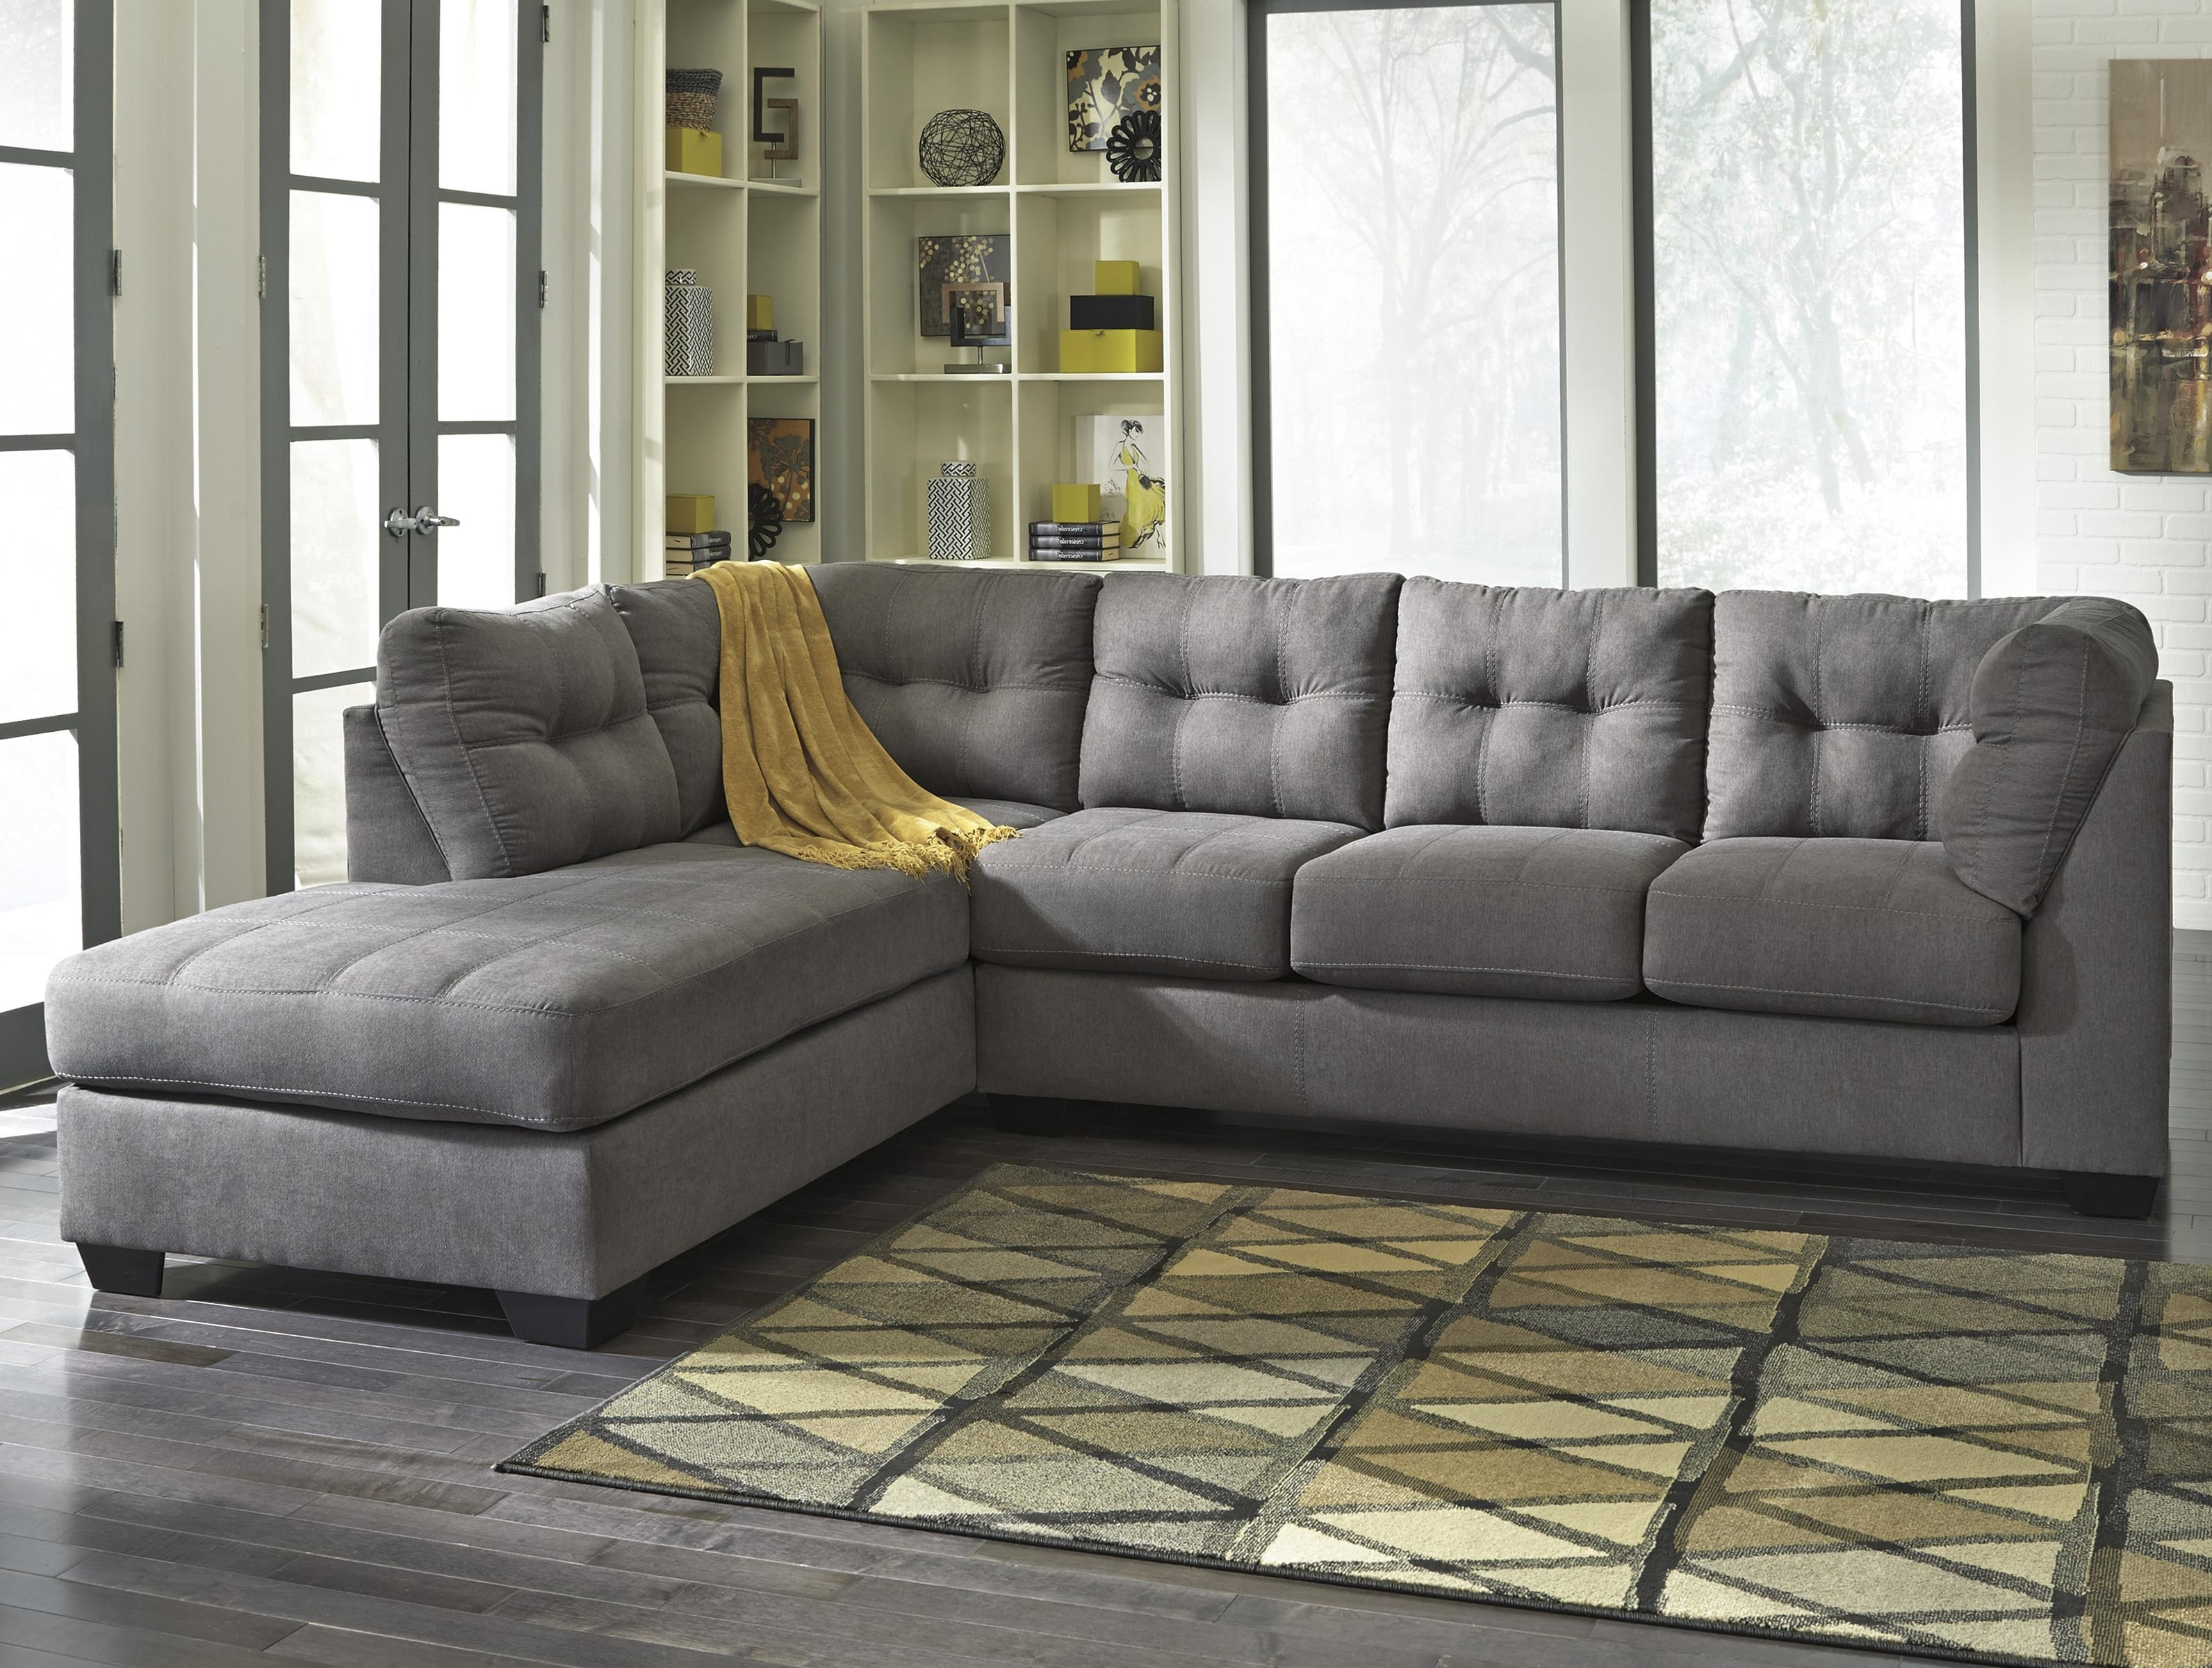 Benchcraftashley Maier - Charcoal 2-Piece Sectional With Left regarding Sectional Sofas With 2 Chaises (Image 3 of 10)